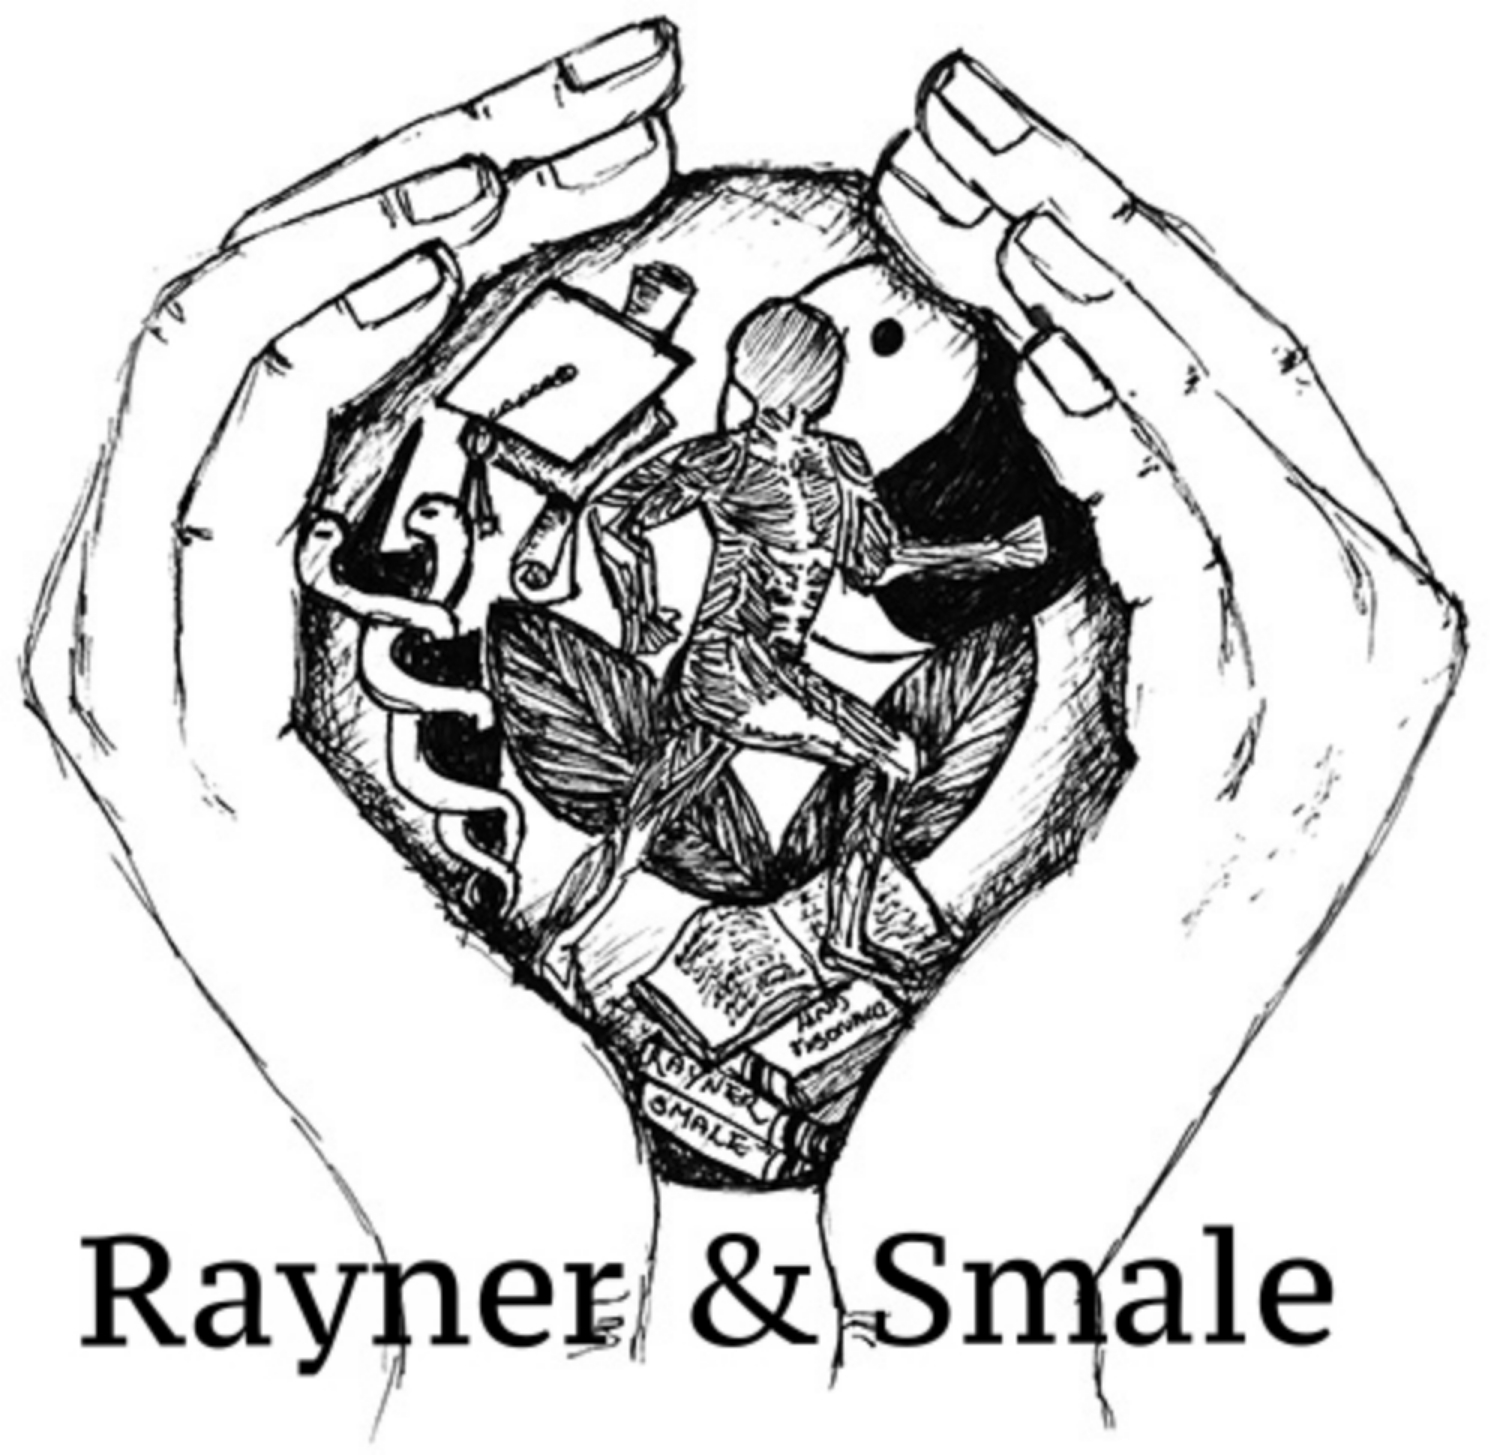 Rayner & Smale